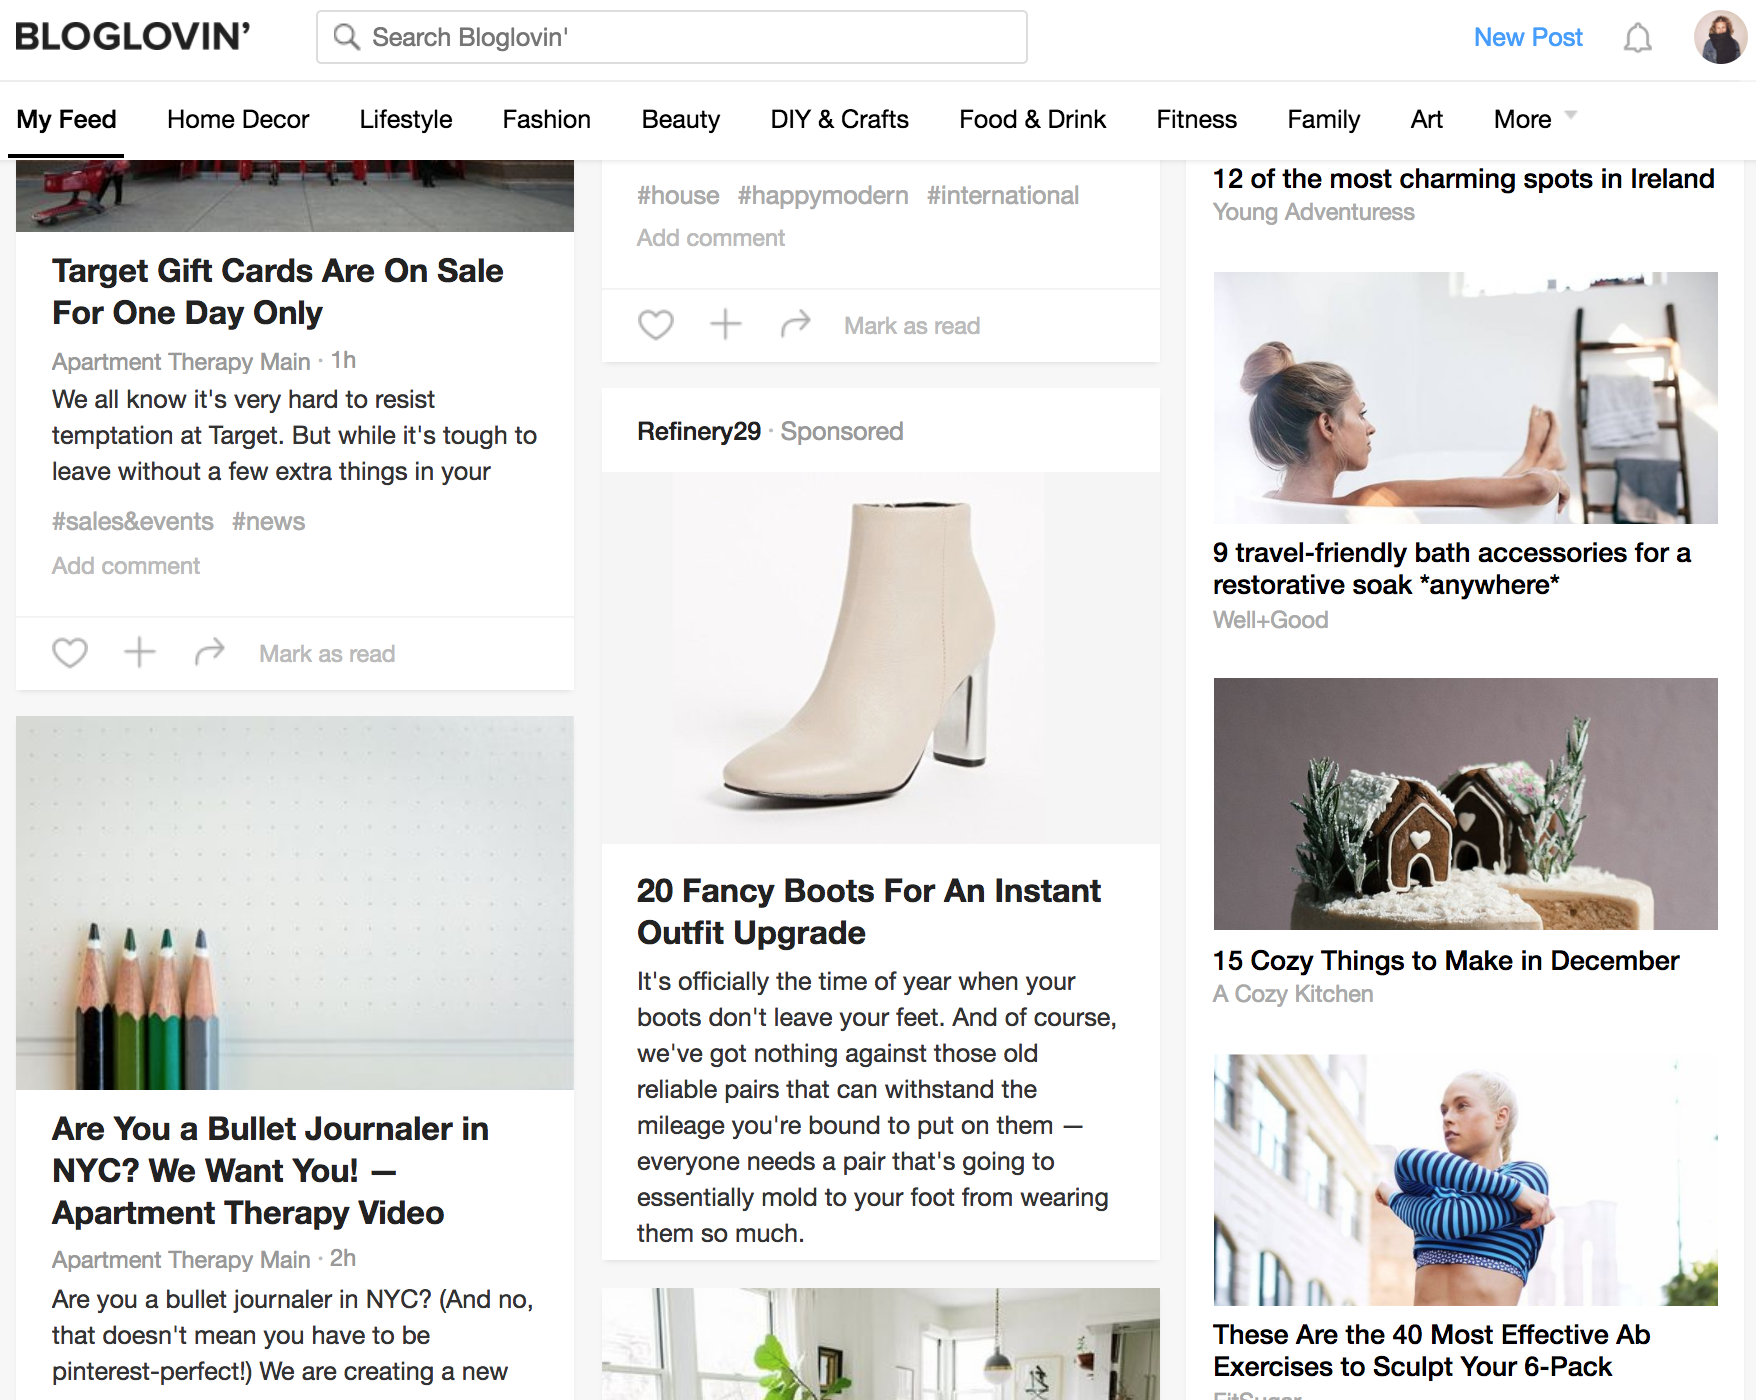 How To Make A Fashion Blog On WordPress